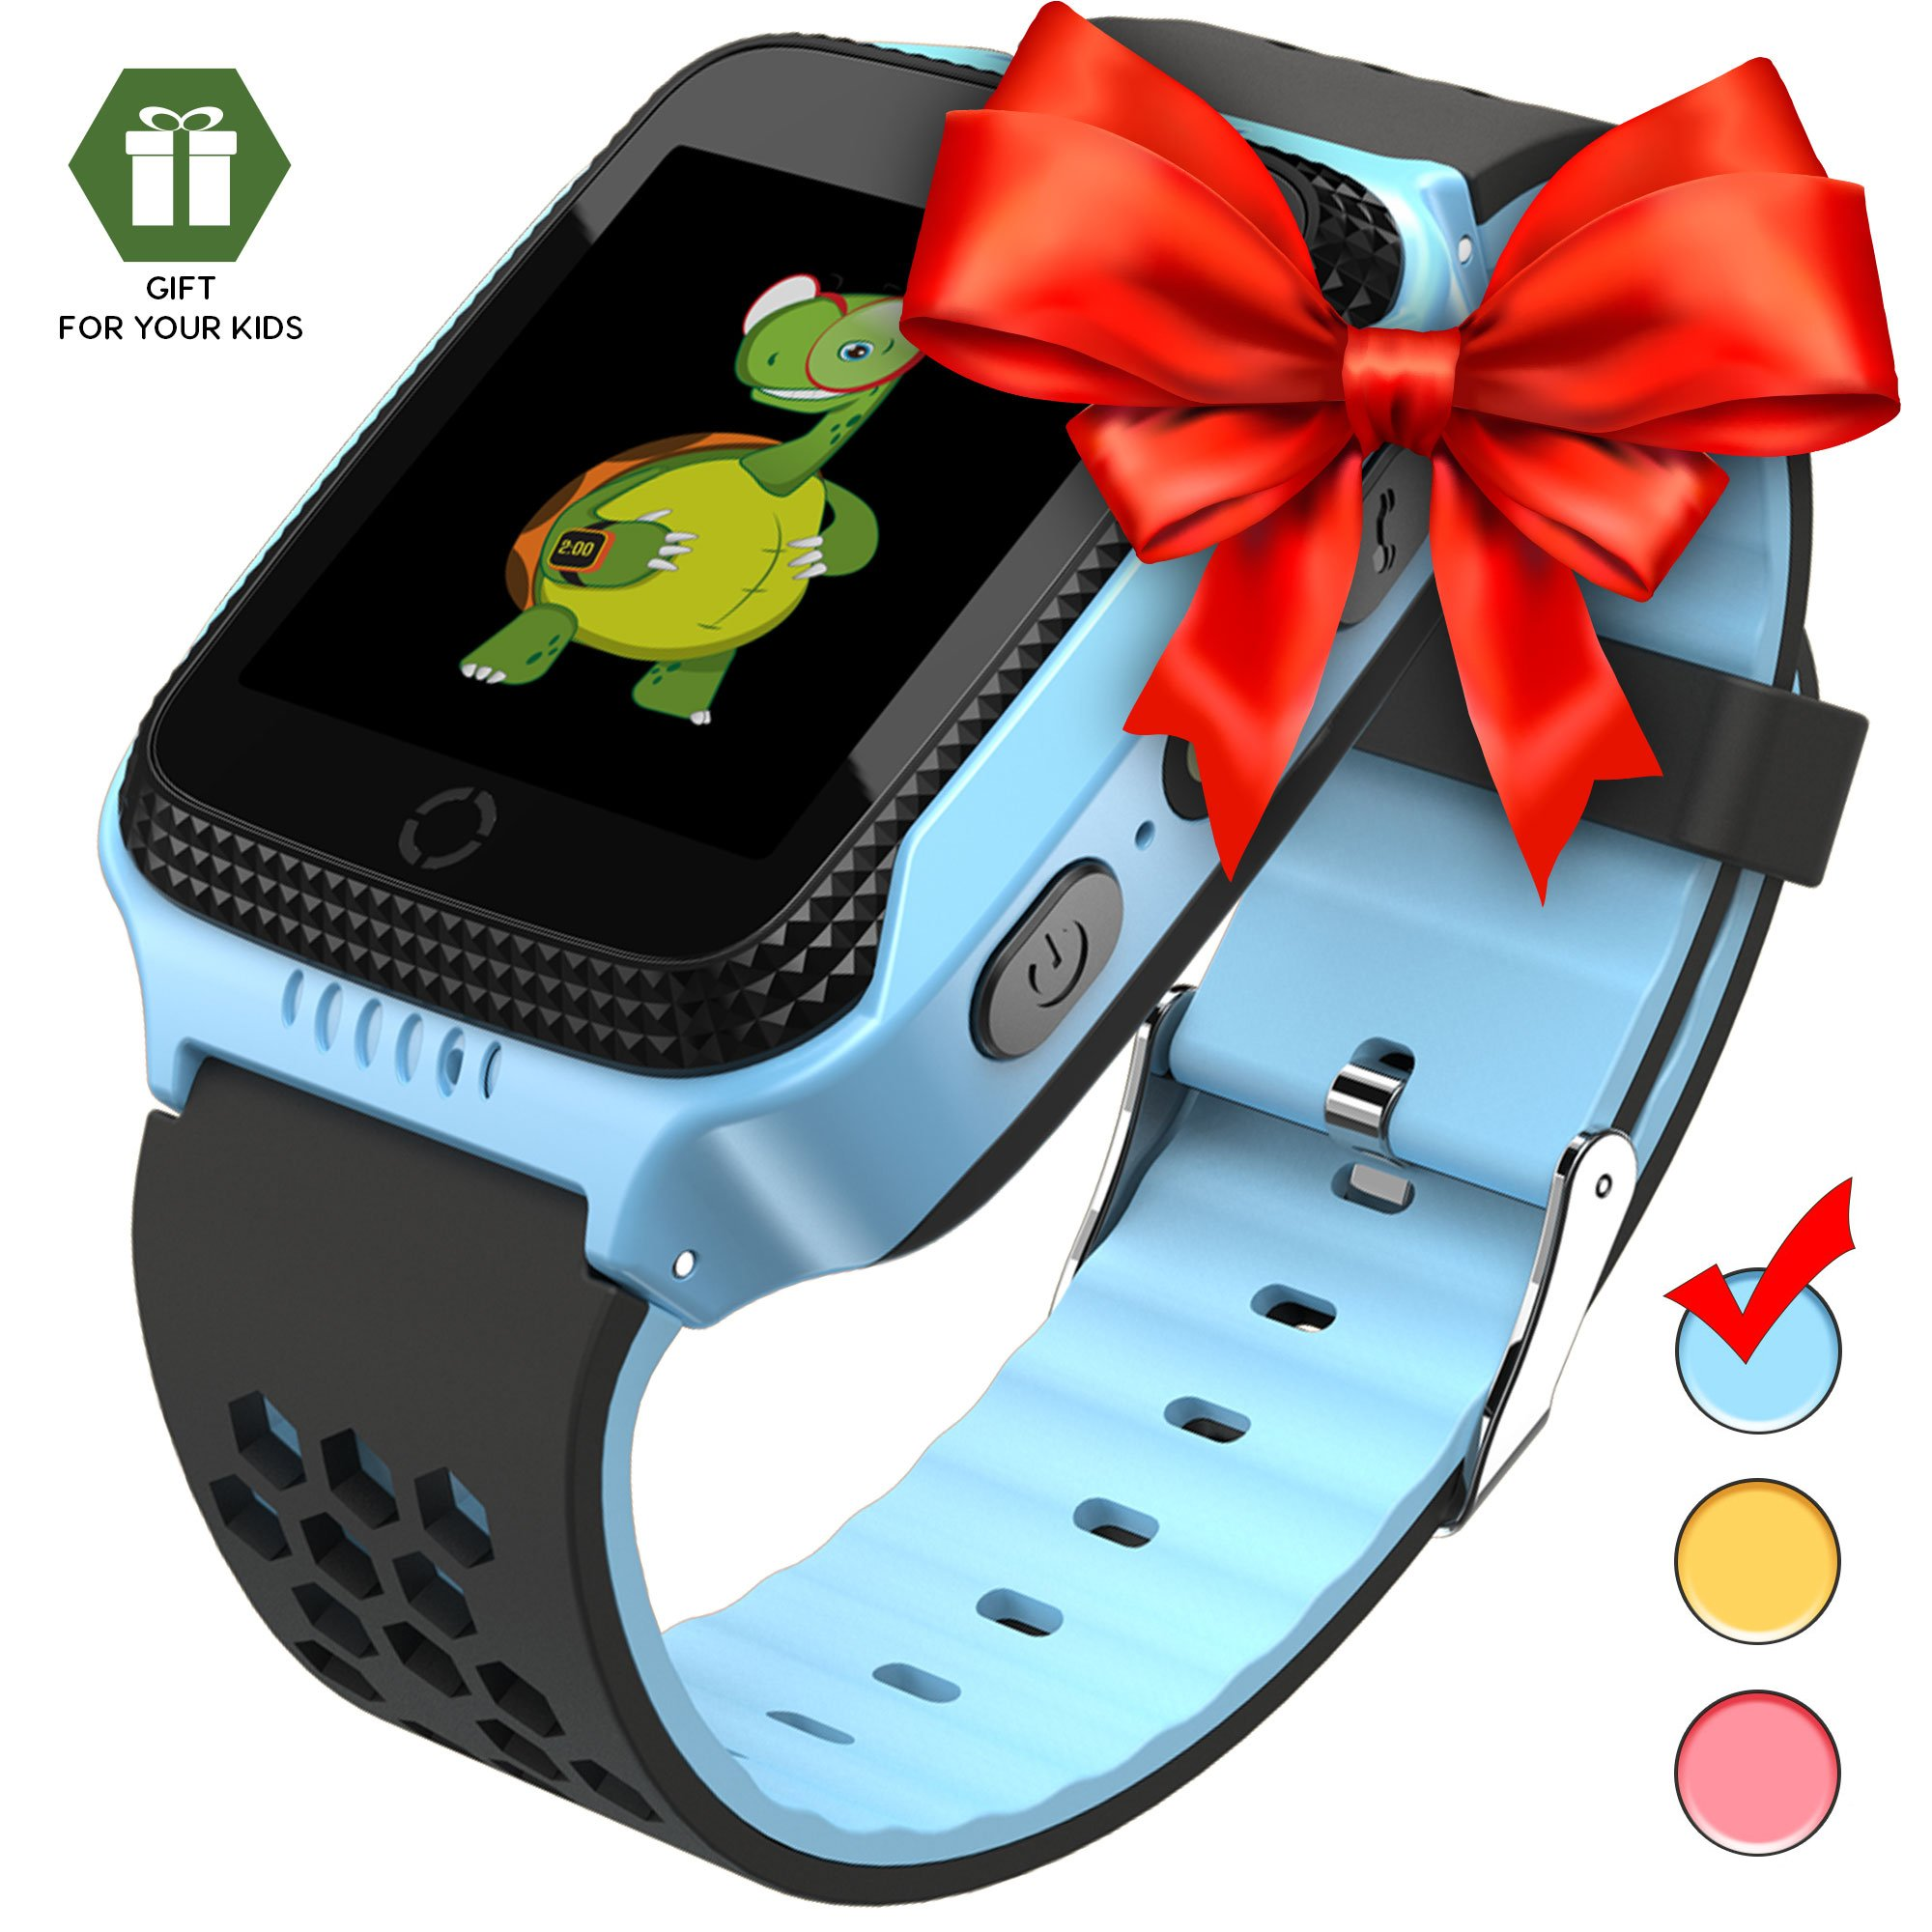 Smart Watch Kids - Smart Watches Boys Smartwatch GPS Tracker Watch Wrist Android Mobile Camera Cell Phone Best Gift Girls Children boy Pink Blue Yellow